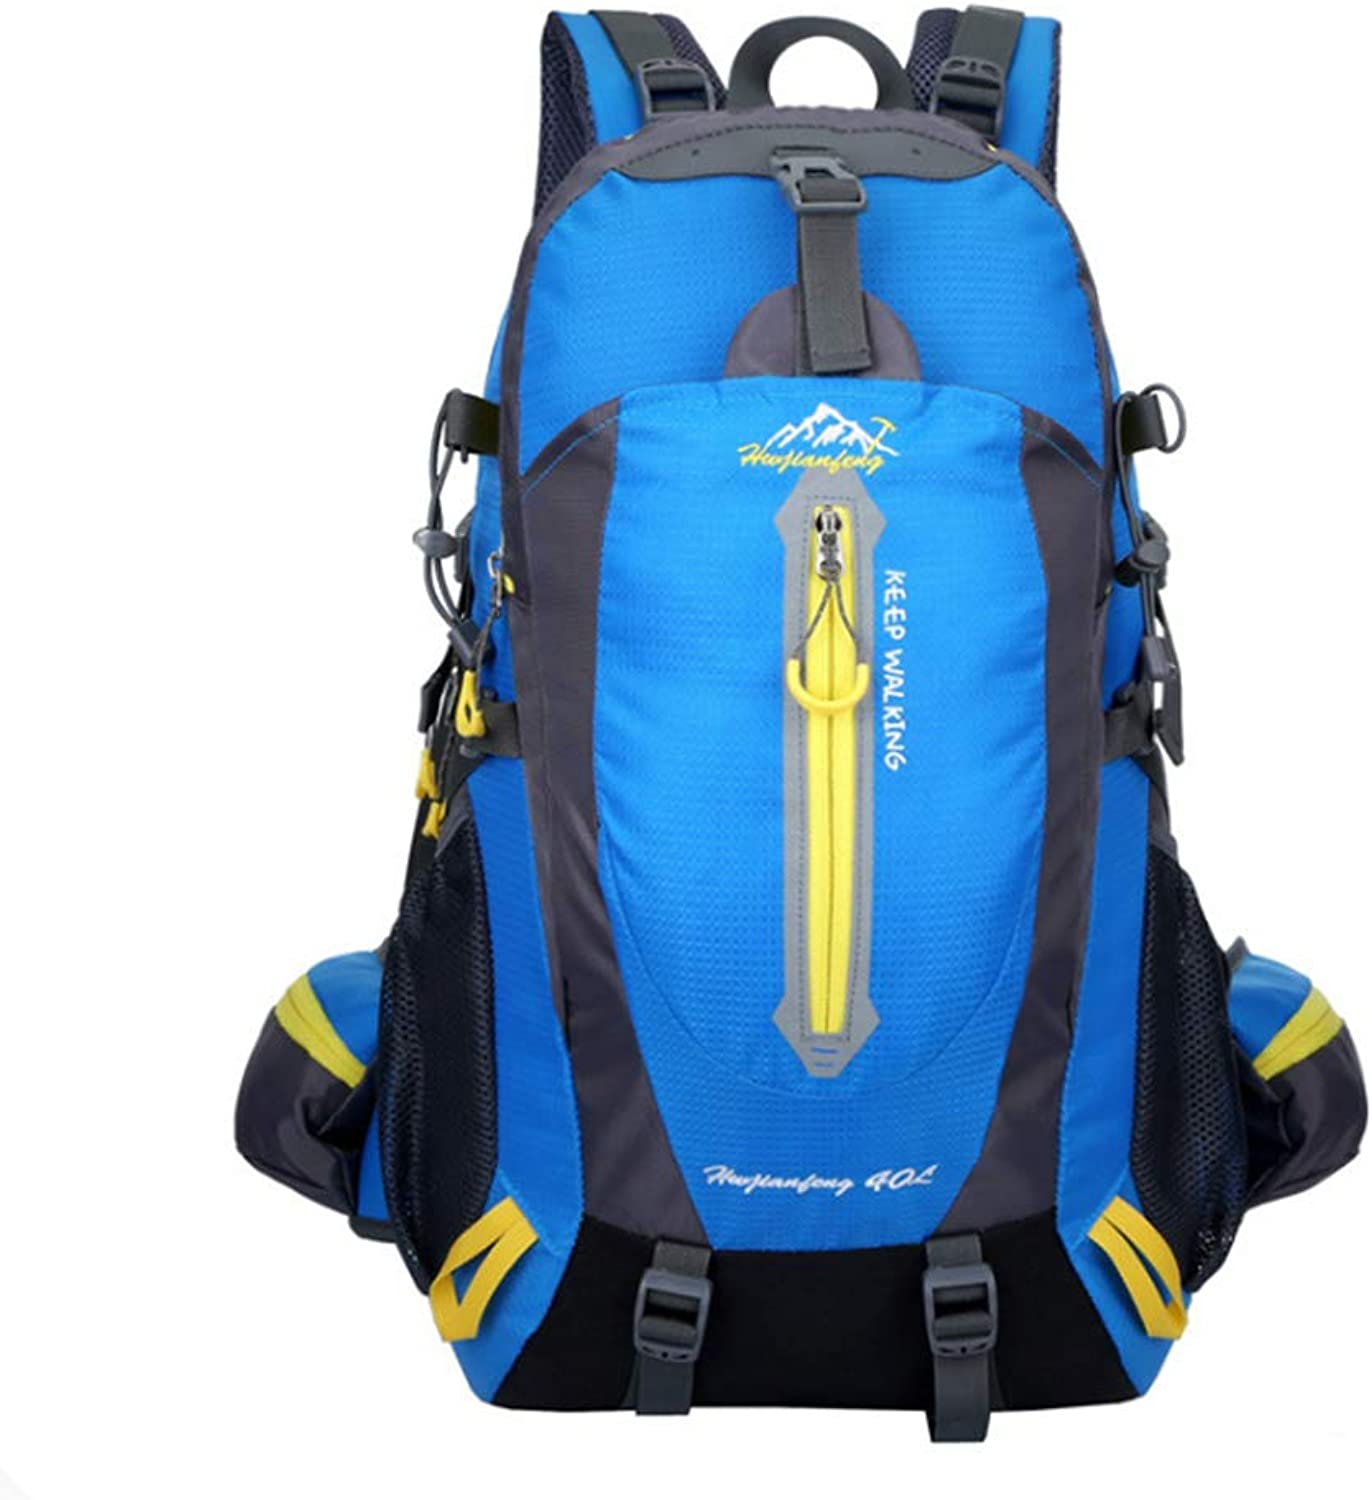 YuXi 40L Ultra Lightweight Waterproof Collapsible Backpack, Travel Hiking Camping Large Backpack